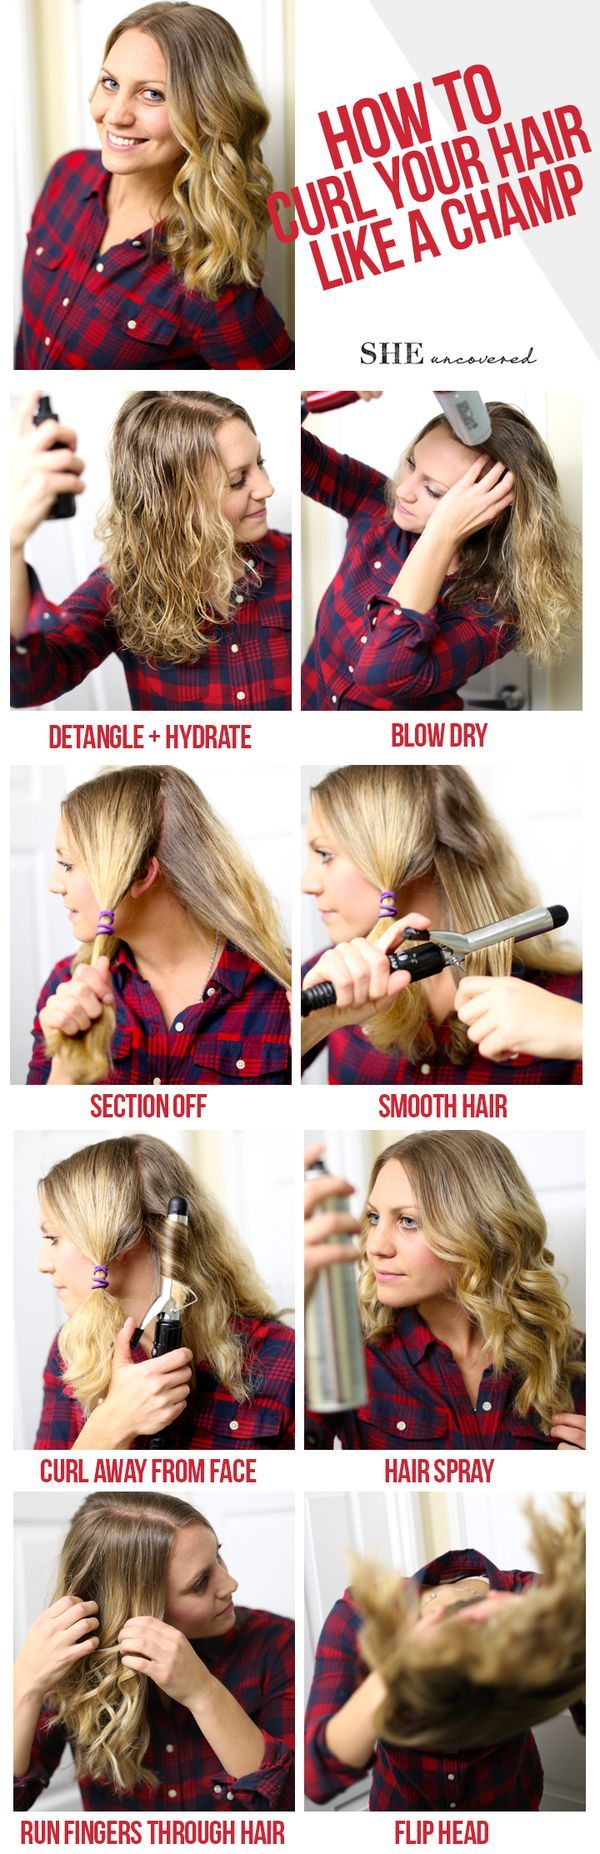 30 Tricks for Curling Your Hair with a Curling Ironer, Straightener Flat Iron